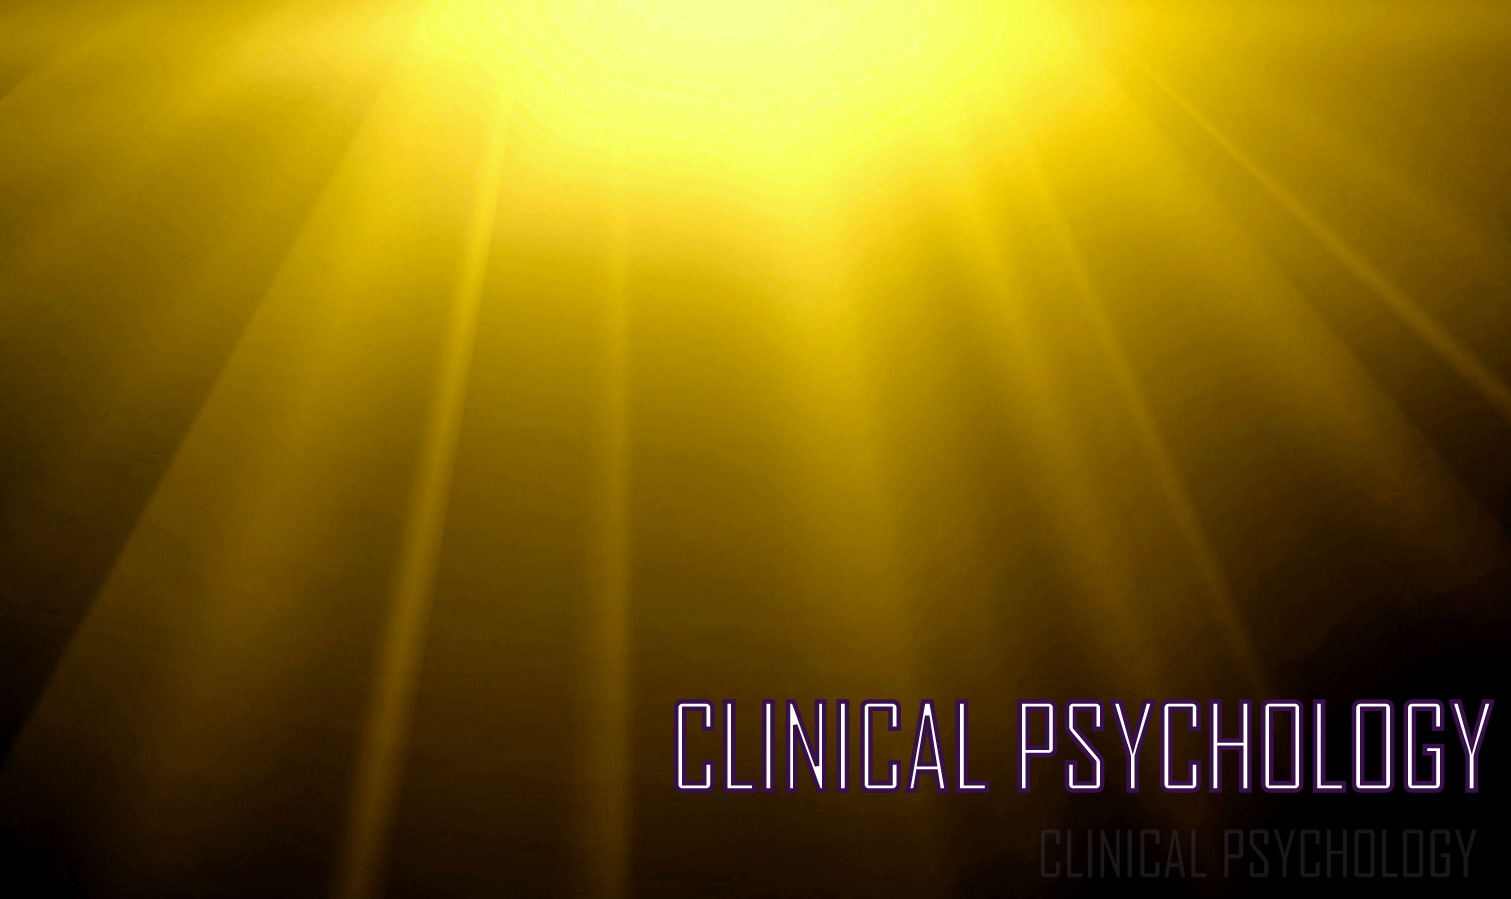 four major approaches to clinical psychology essay Identify at least one contributor to each of the four theoretical approaches in clinical psychology, along with his or her specific theories or views about.